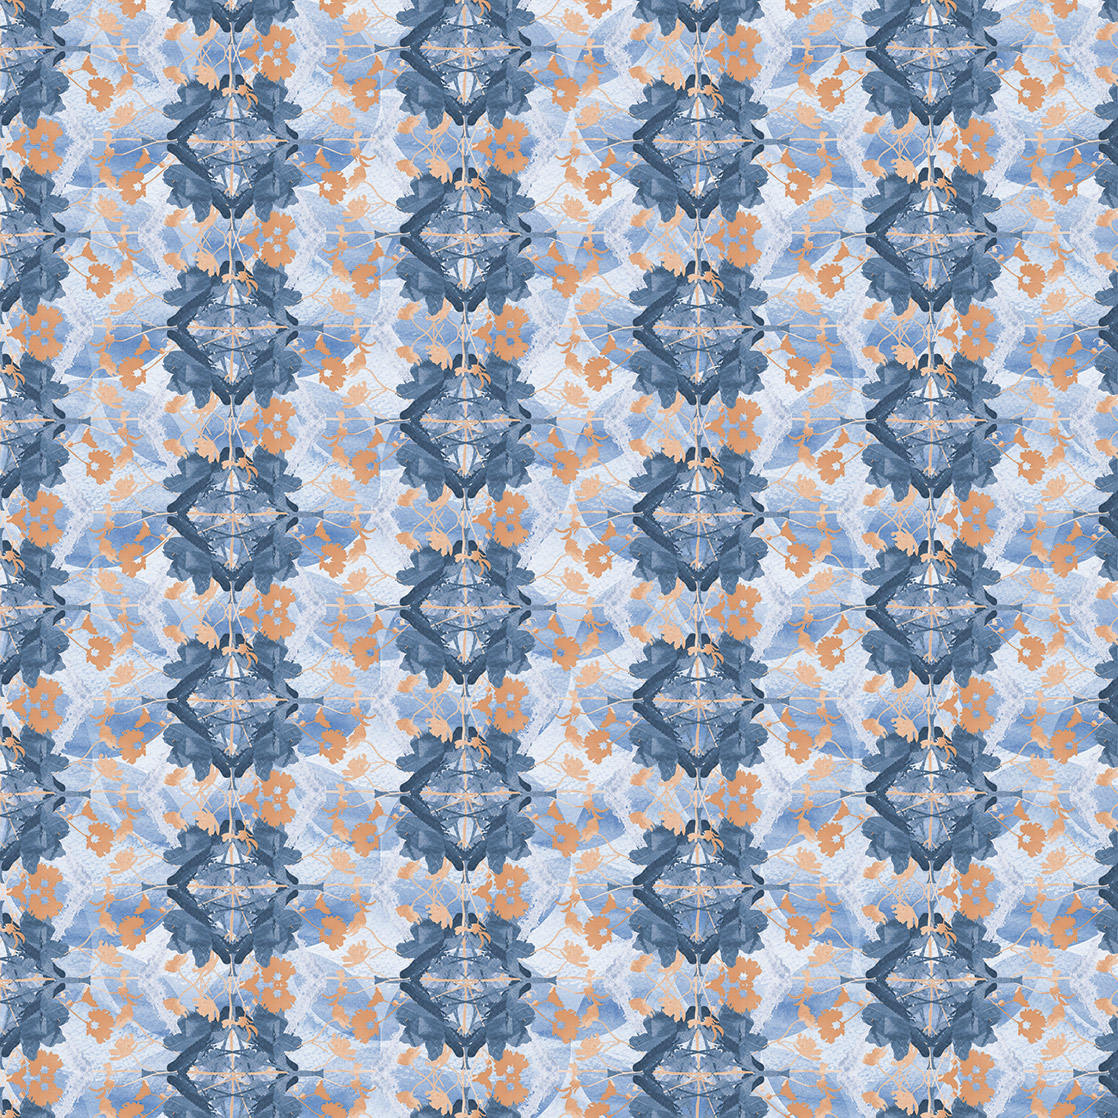 Kaleidoscope – Pattern 5